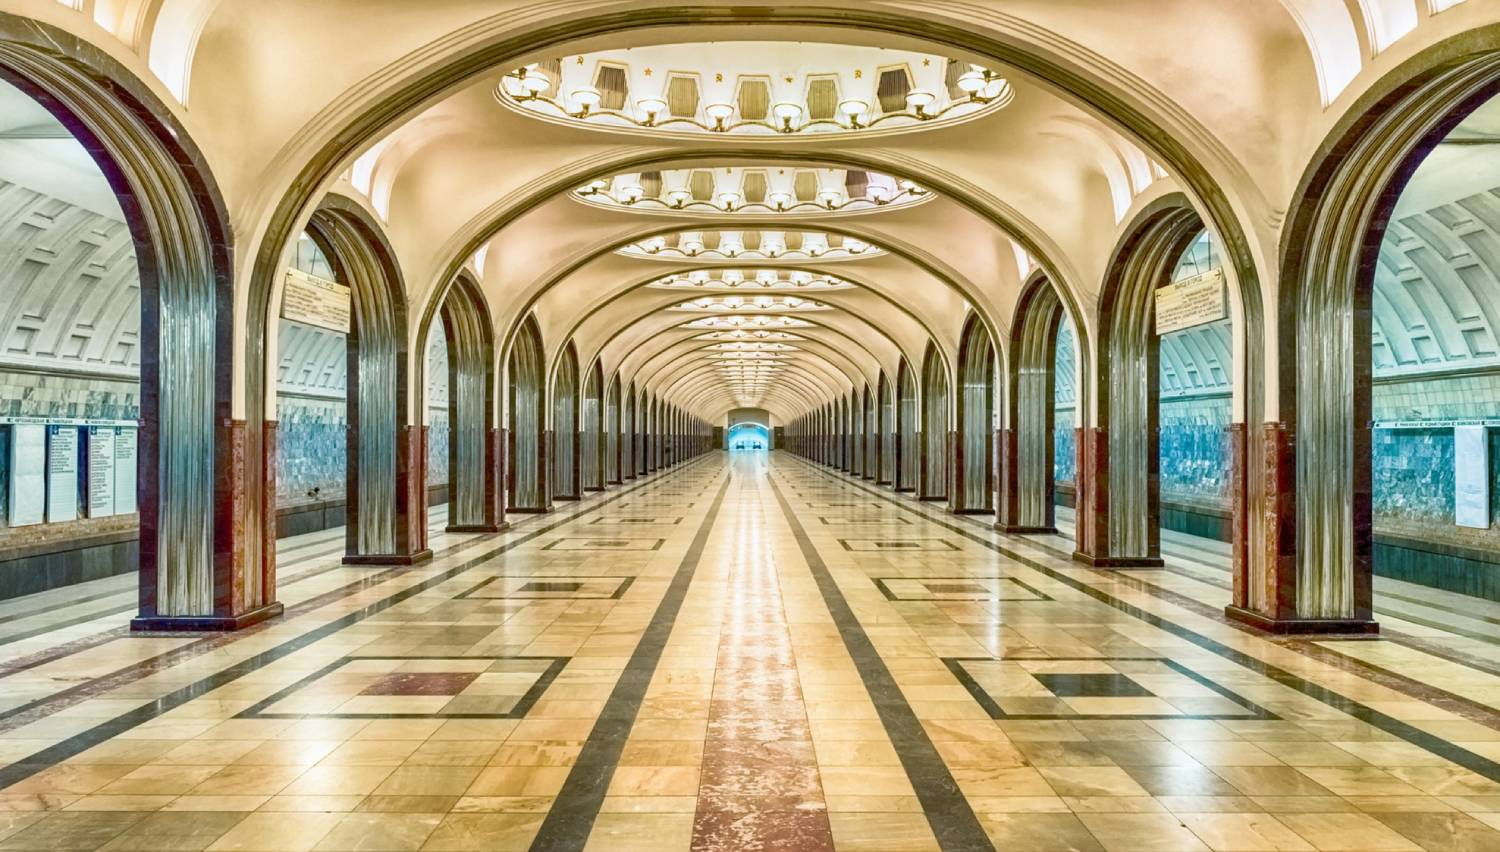 The Moscow Metro - Things To Do In Moscow